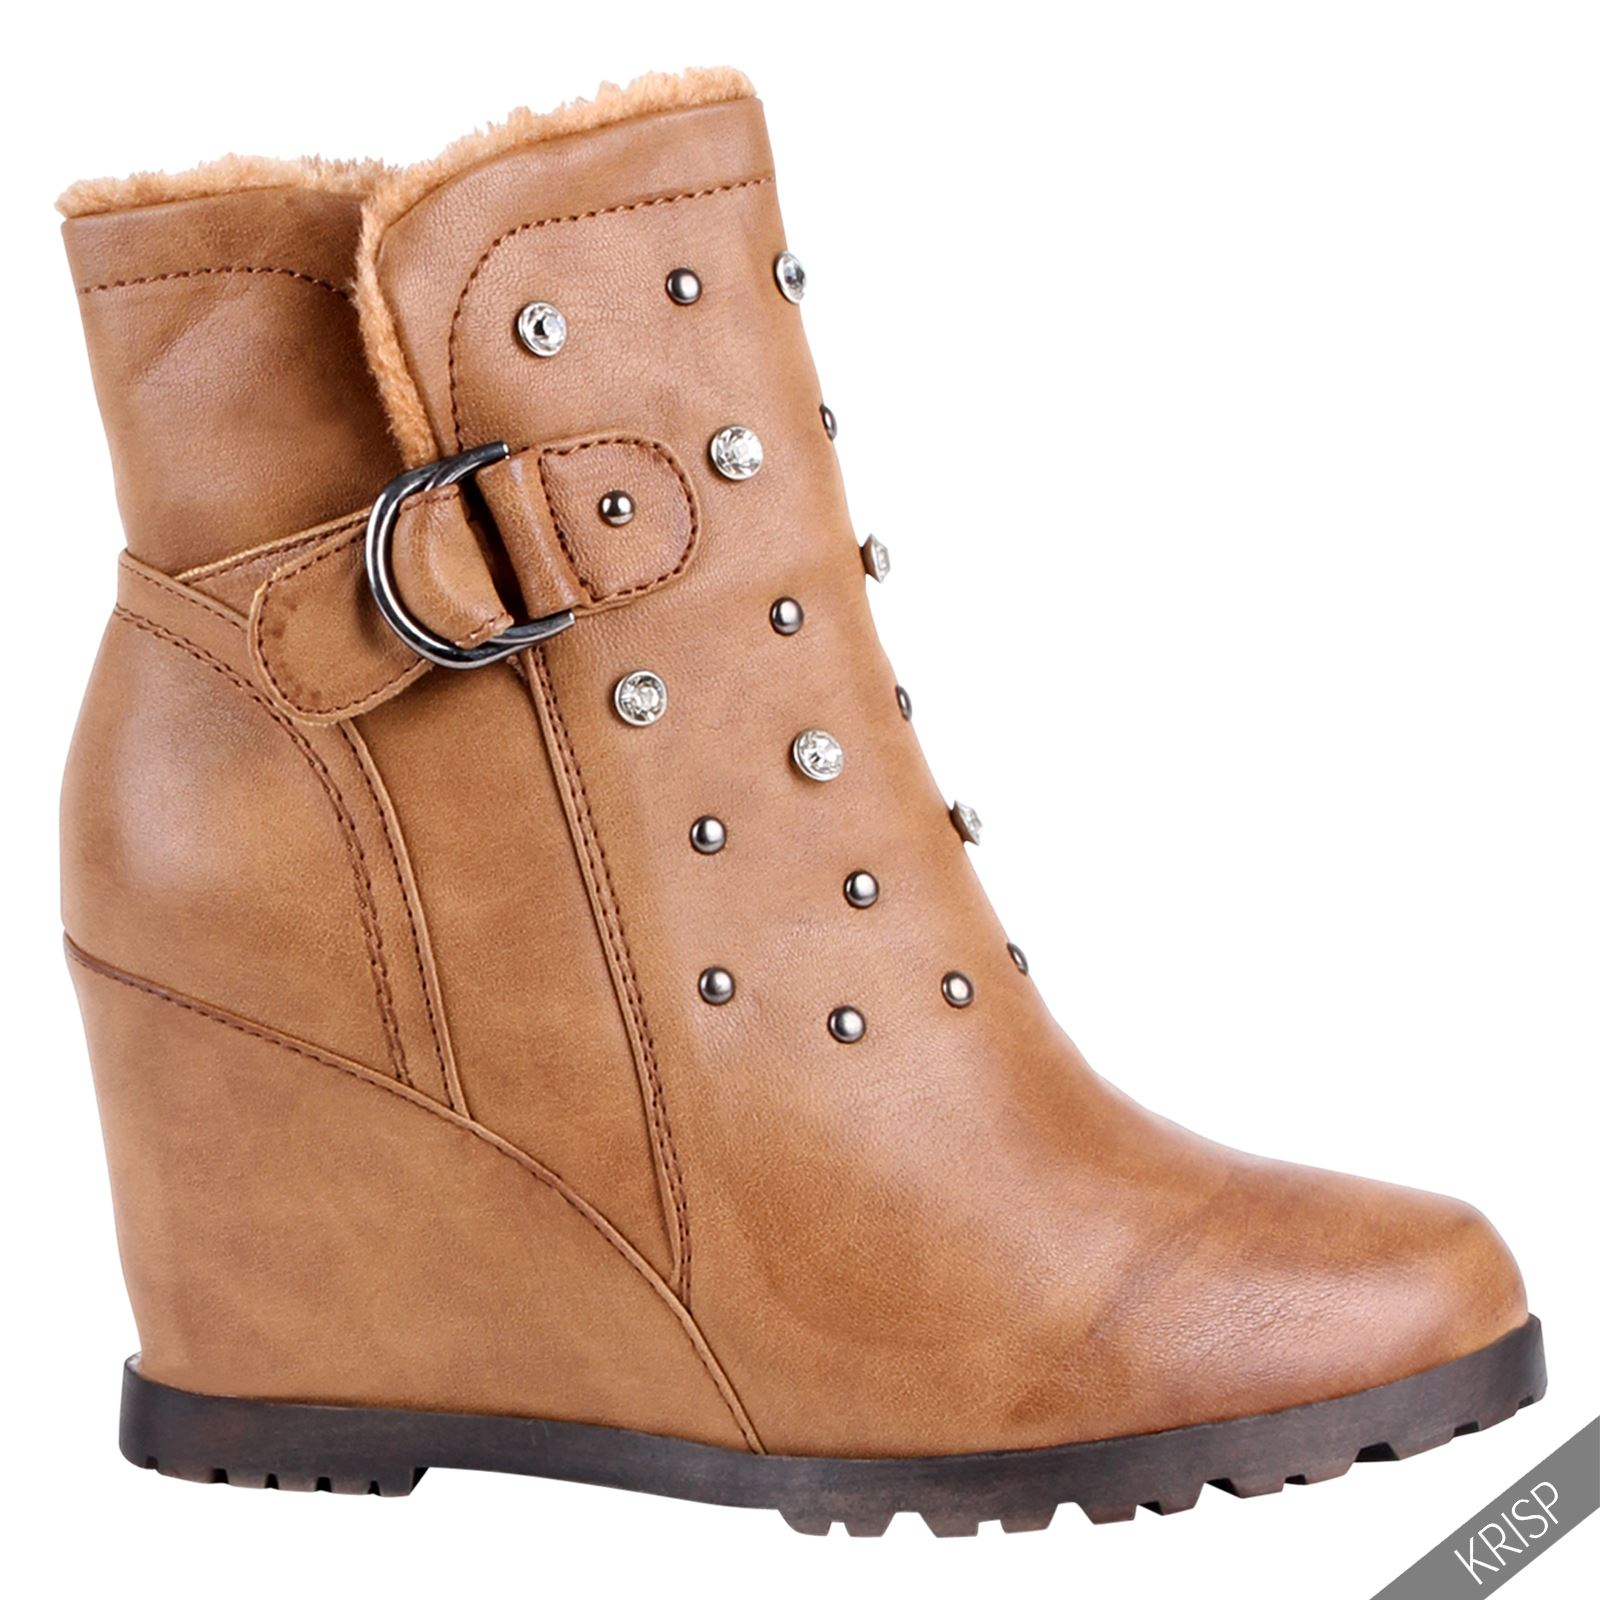 Unique Lucille Womens Stiletto Heels Zip Up Ladies Sexy Thigh High Boots Shoes New Size   EBay